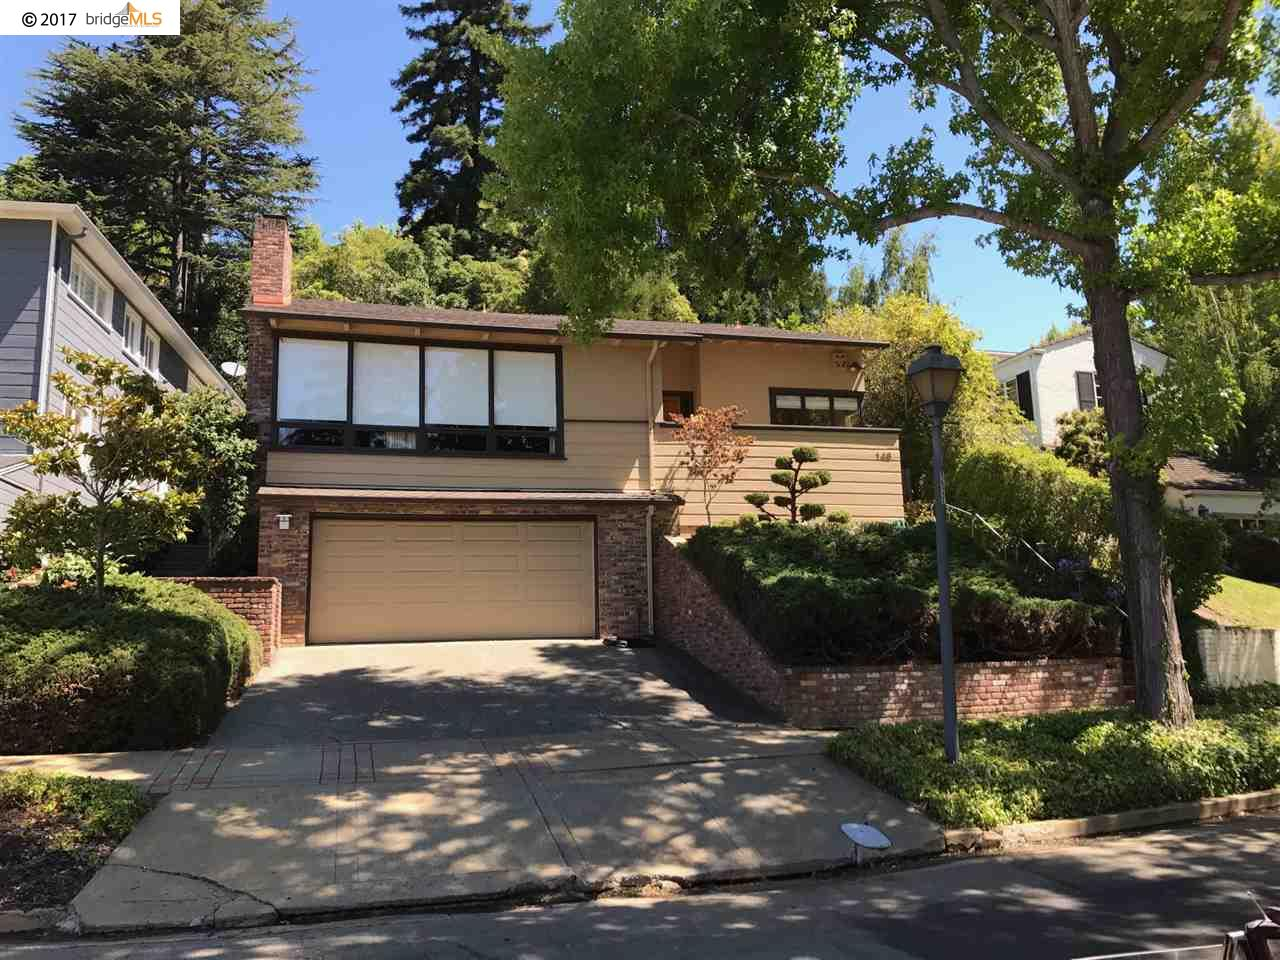 Single Family Home for Rent at 148 Sandringham Road Piedmont, California 94611 United States